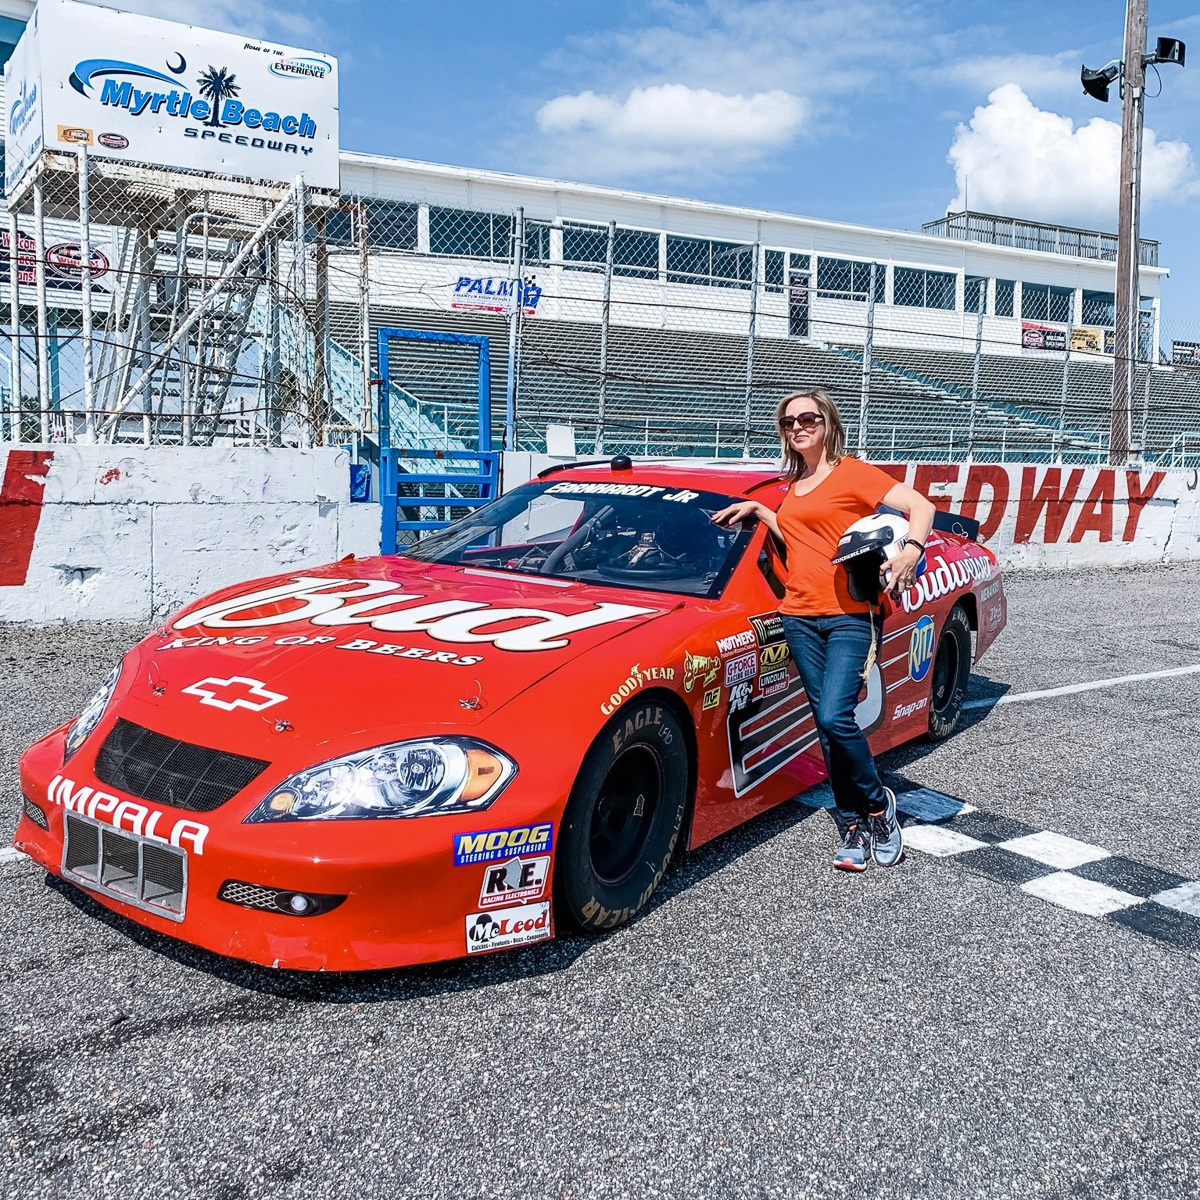 NASCAR Ride Along Experience near Myrtle Beach, South Carolina